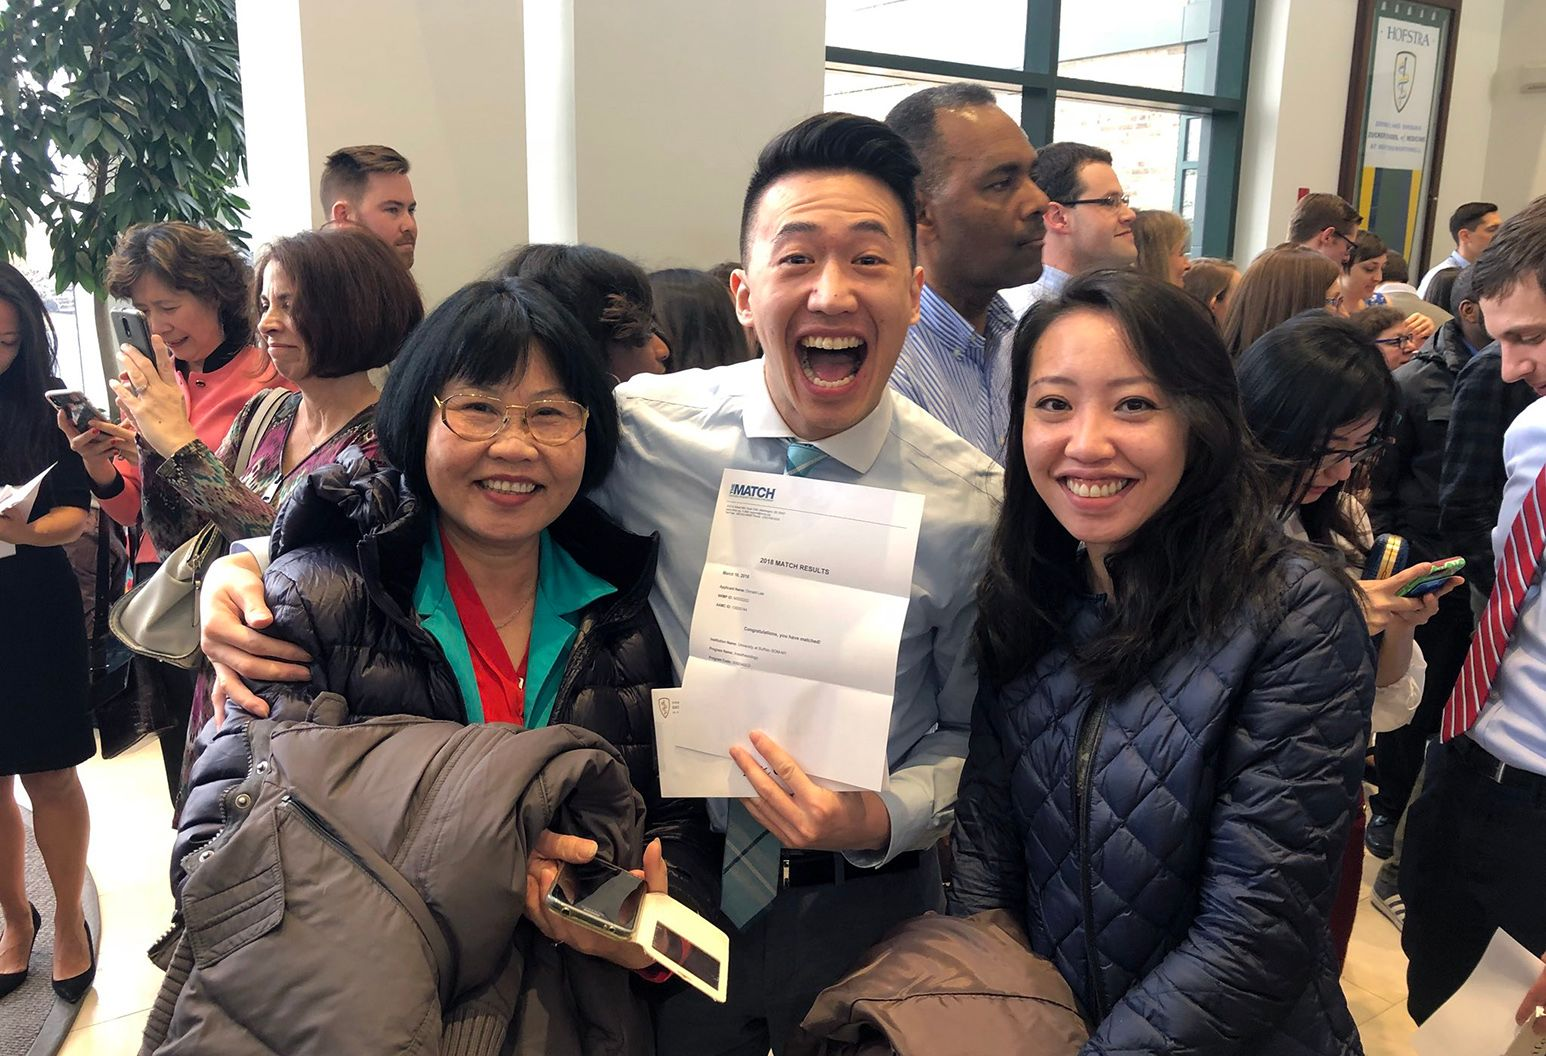 A student, with his family, holding a letter ecstatic about being matched for his residency.